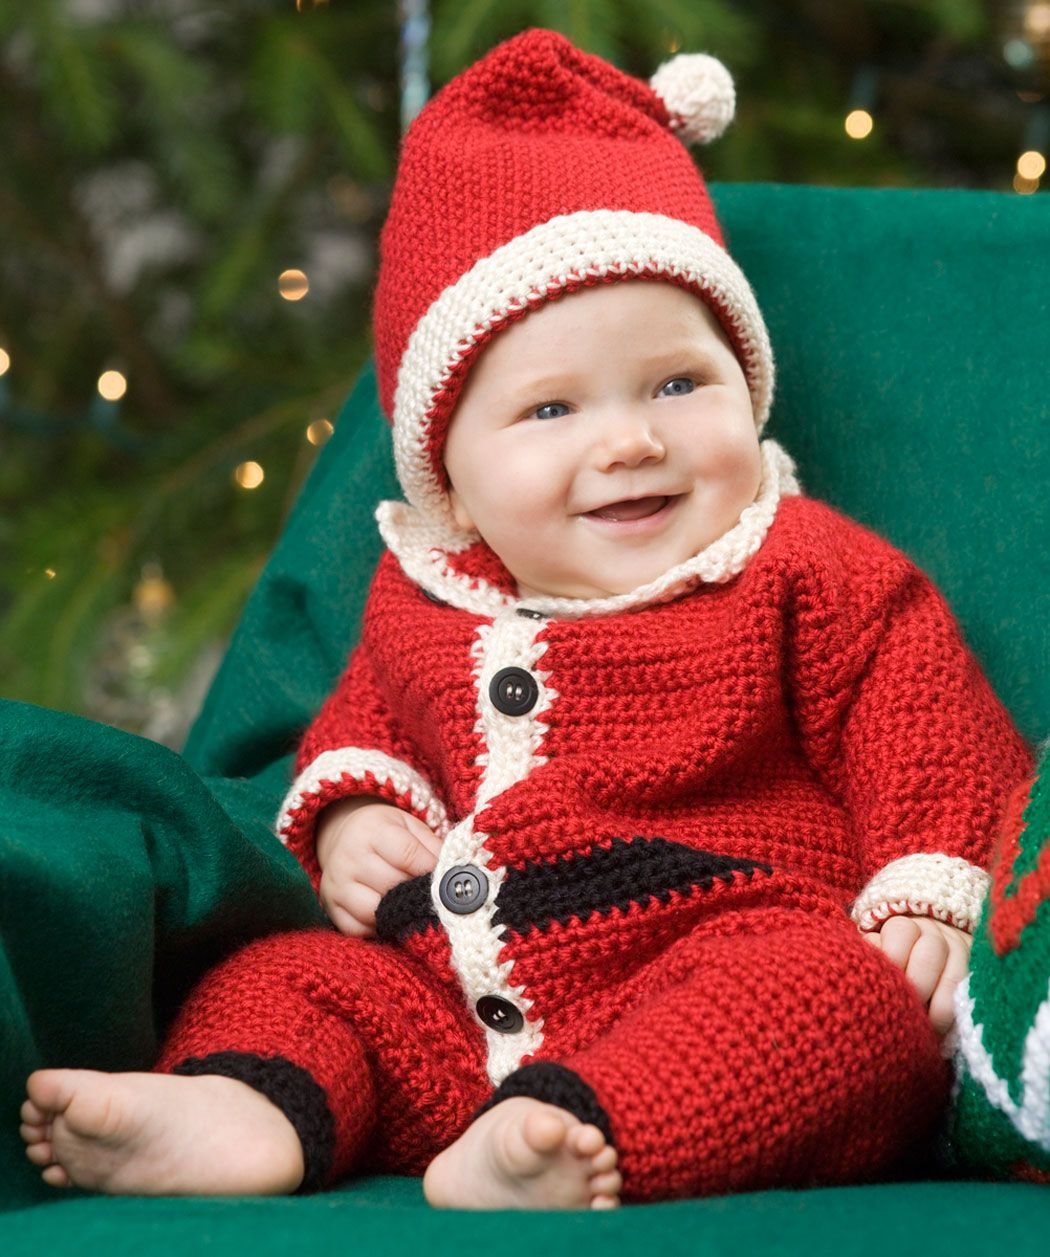 106a2216dd84 Infant Santa Suit Crochet Pattern by Red Heart yarns  Christmas ...